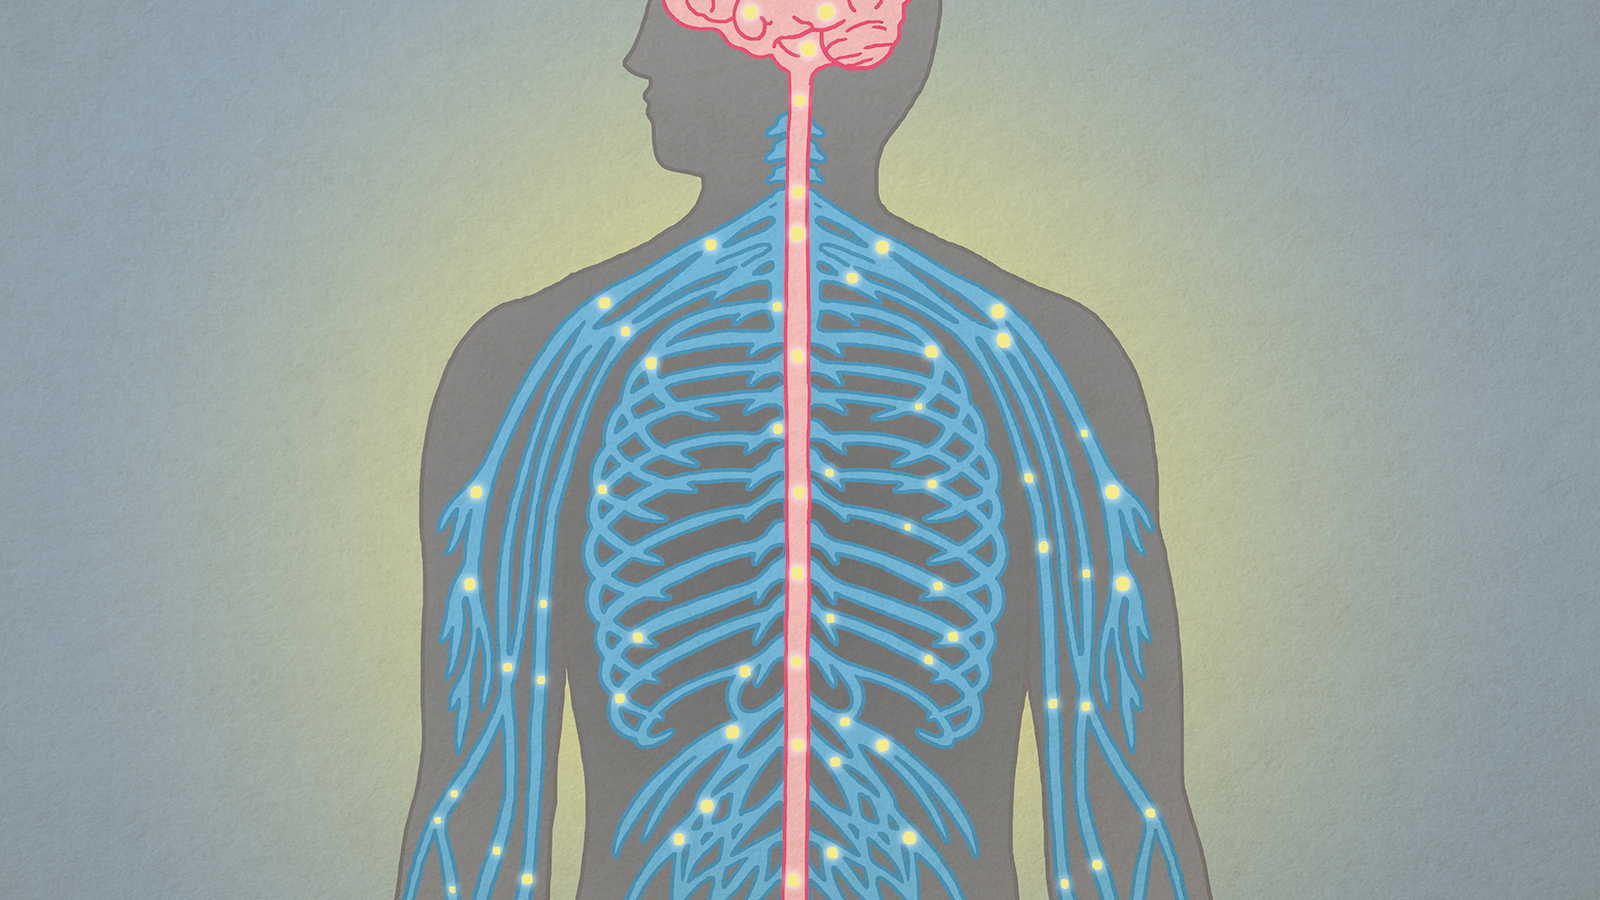 Gene therapy could provide a cure for Friedreich's Ataxia, a rare degenerative illness.